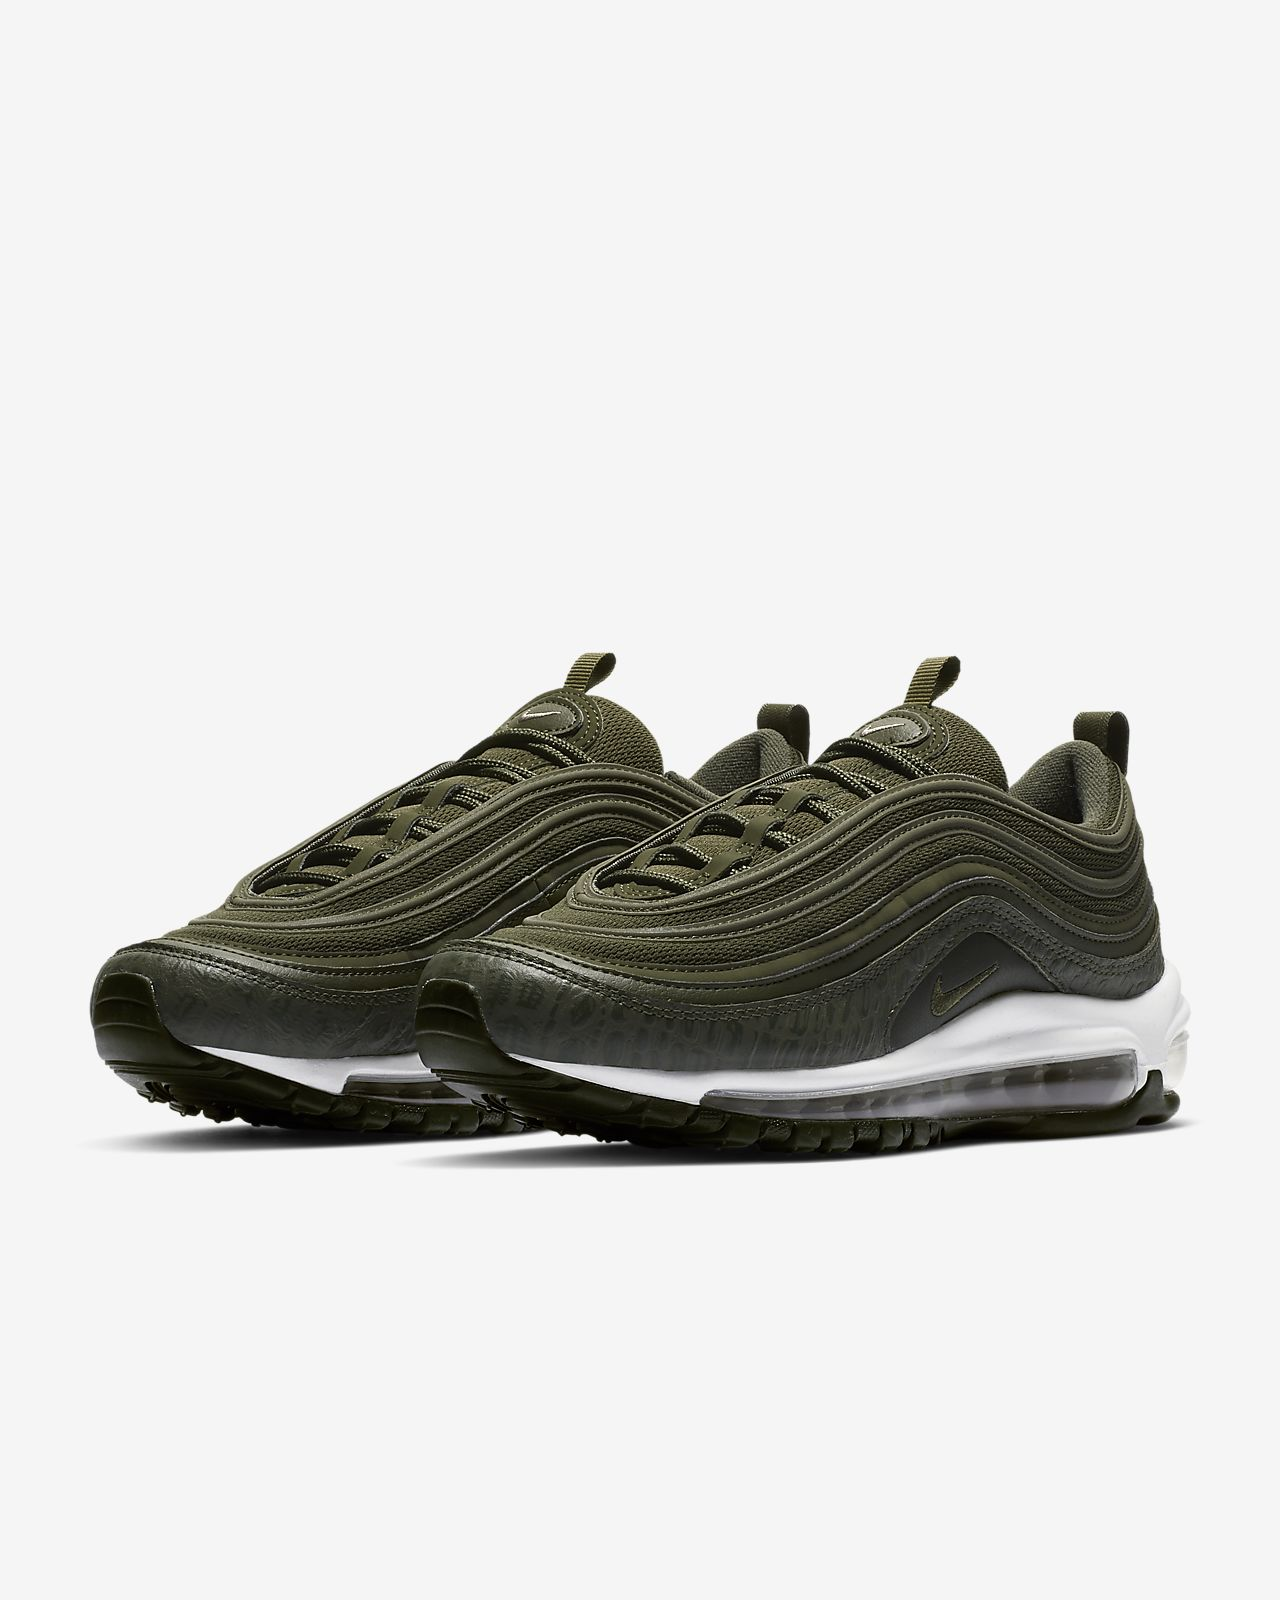 Chaussure Nike Air Max 97 Lx Pour Femme Nike Com Be